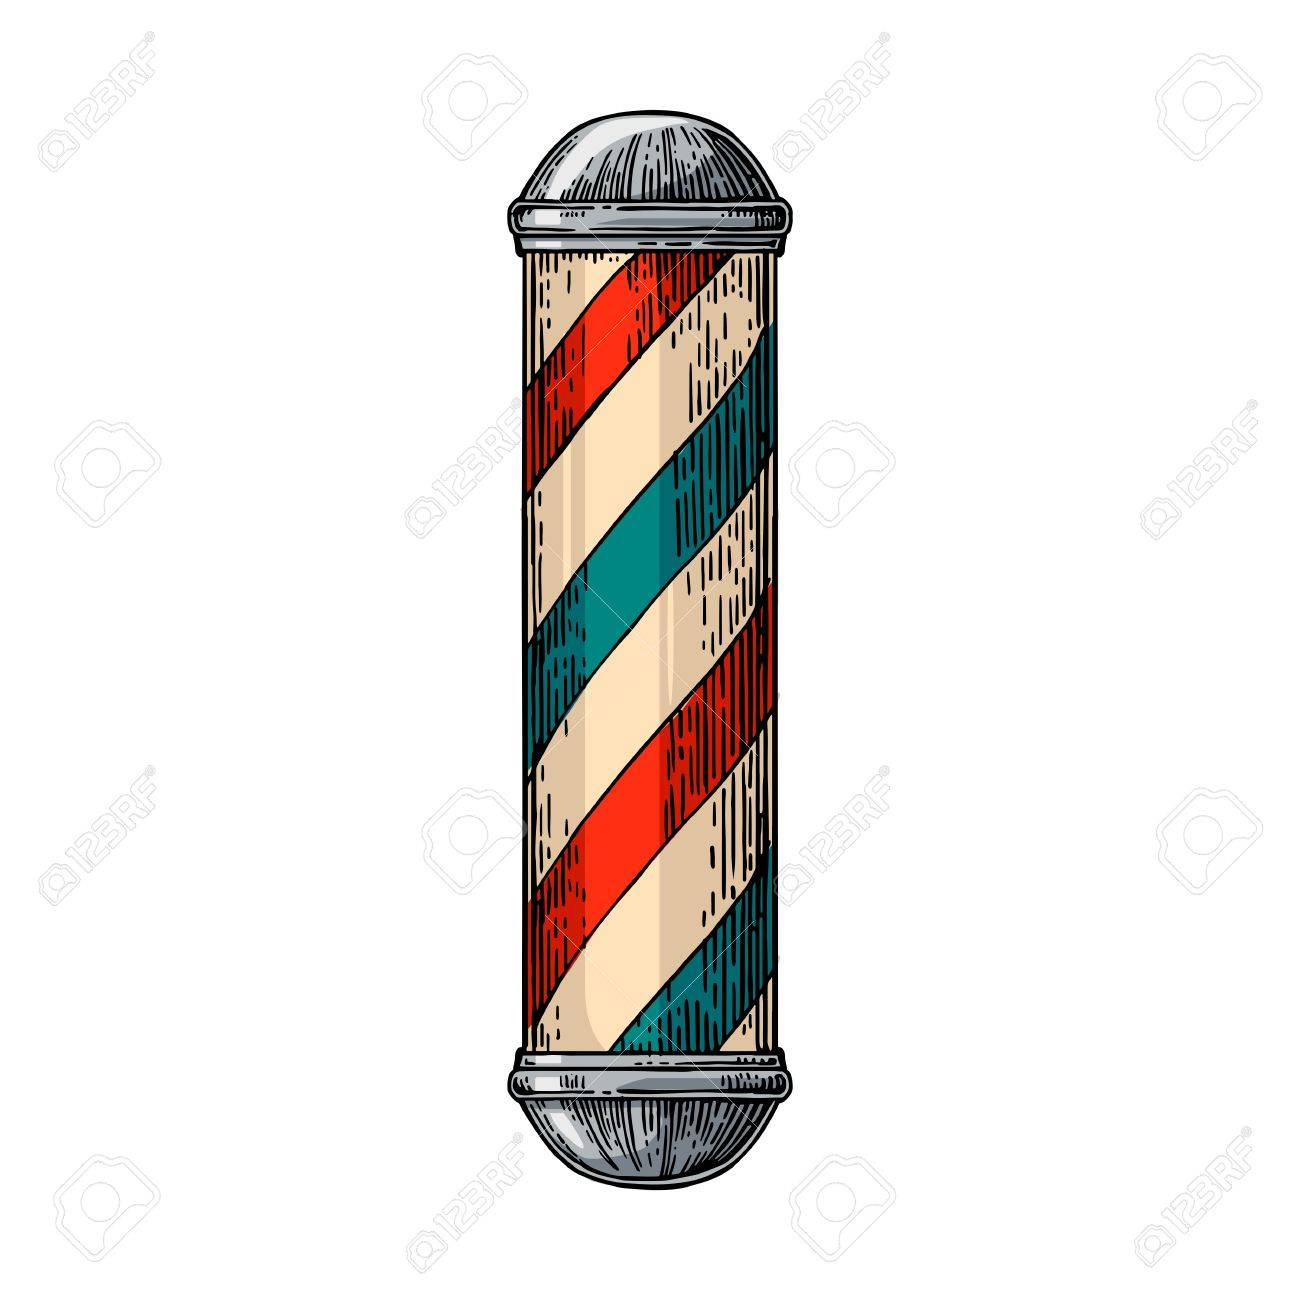 Classic Barber Shop Pole Vector Color Vintage Illustrations Isolated On White Backgrounds Hand Drawn